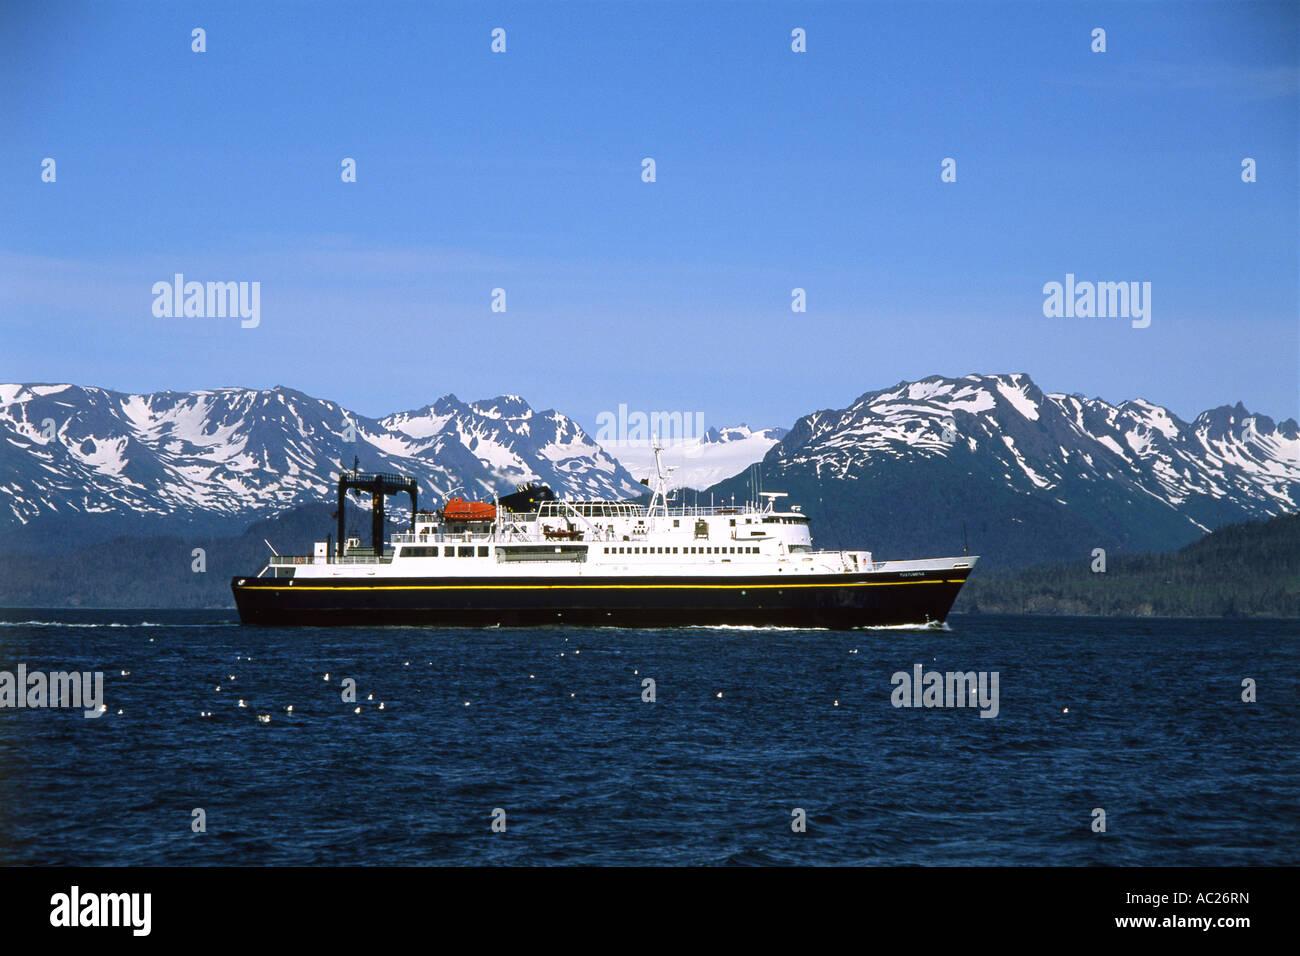 Ocean liner in body of water by mountains - Stock Image